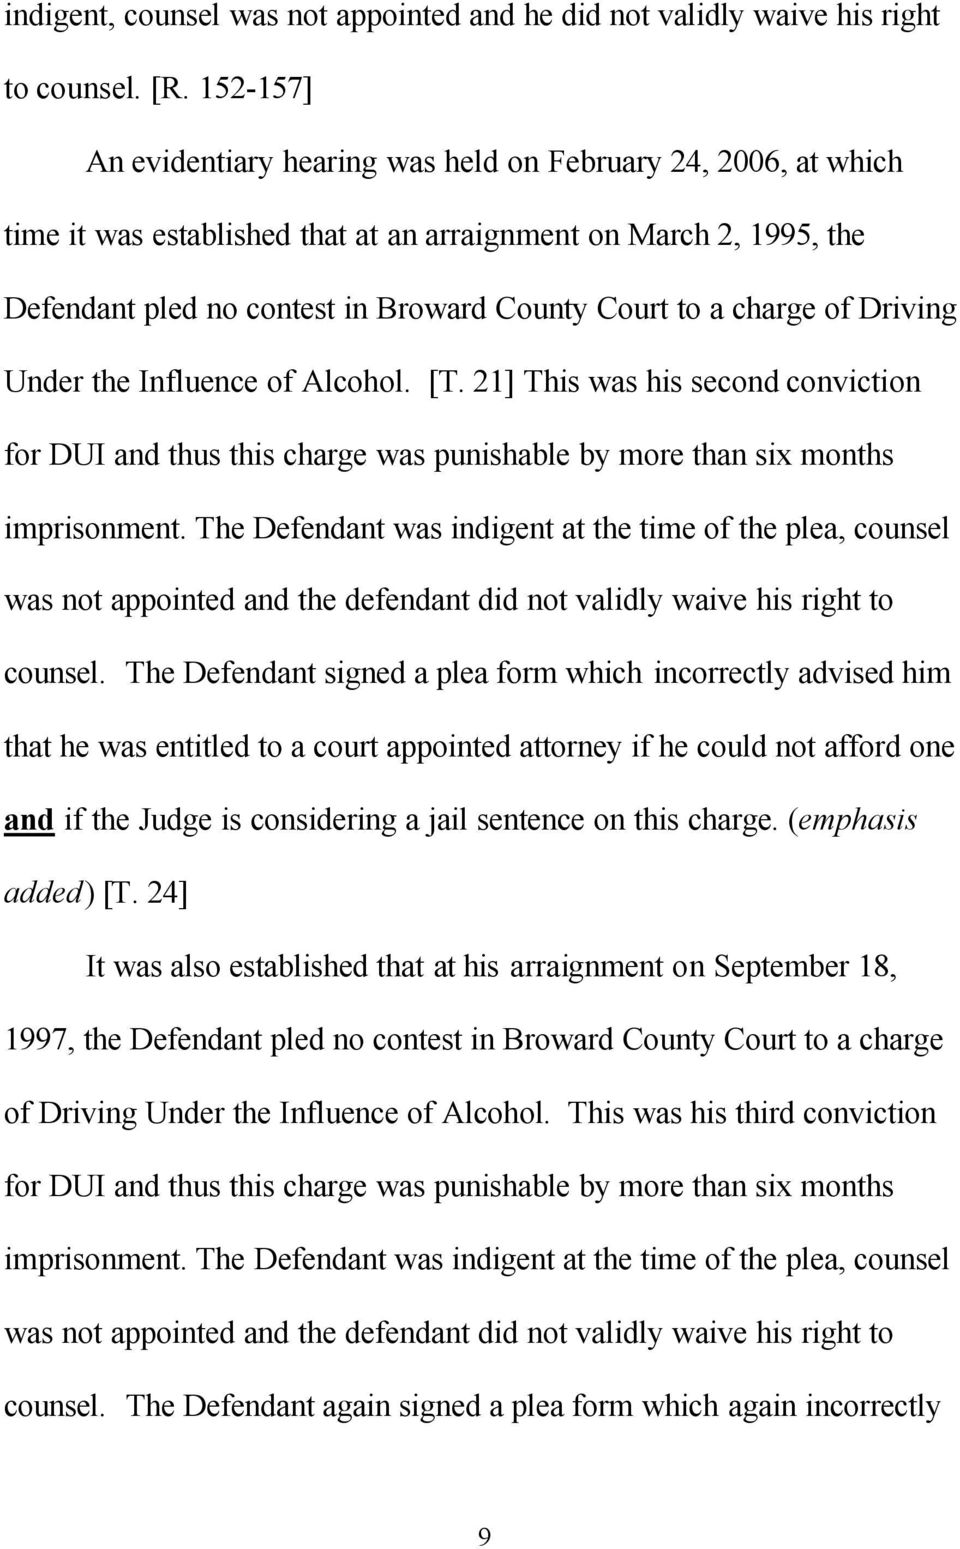 charge of Driving Under the Influence of Alcohol. [T. 21] This was his second conviction for DUI and thus this charge was punishable by more than six months imprisonment.